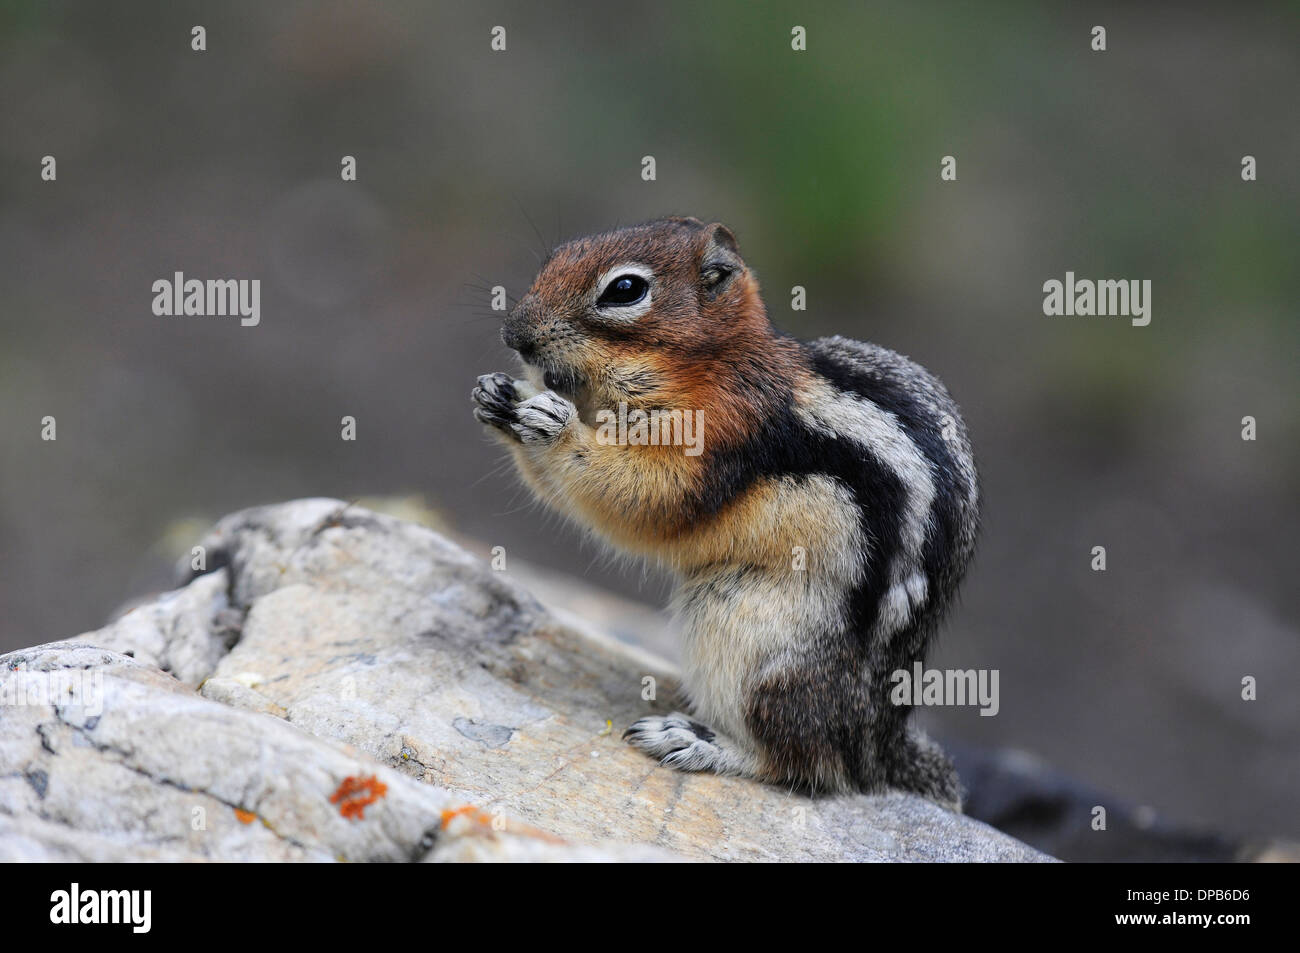 Golden-mantled Ground Squirrel (Spermophilus lateralis), Banff National Park, Alberta, Canada, Rocky Mountains - Stock Image